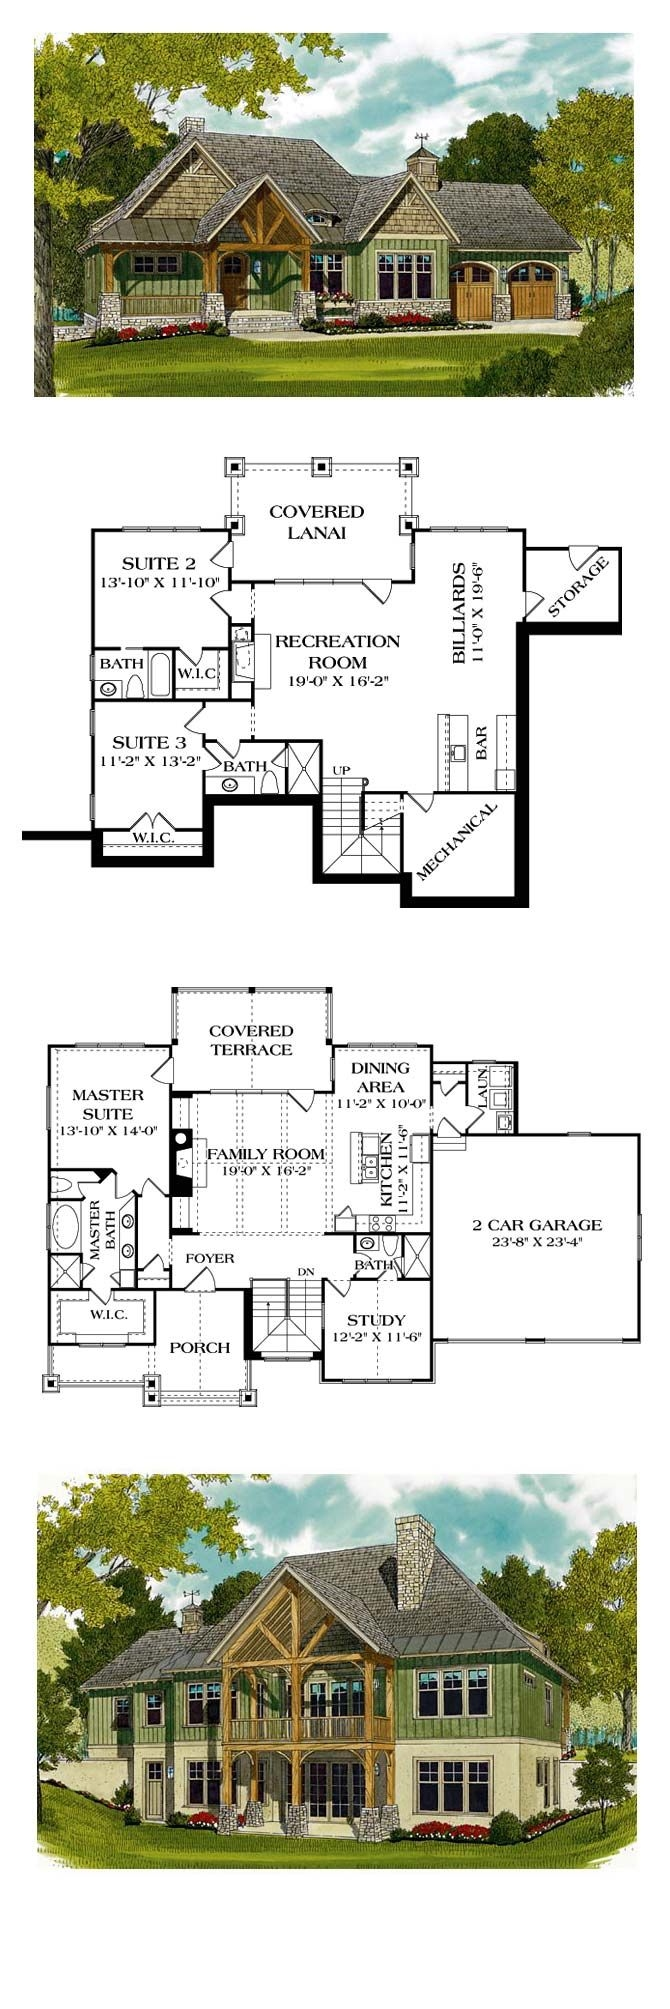 Rustic Mountain House Plans with Walkout Basement Inspirational Bungalow Style House Plan Number with 3 Bed 4 Bath 2 Car